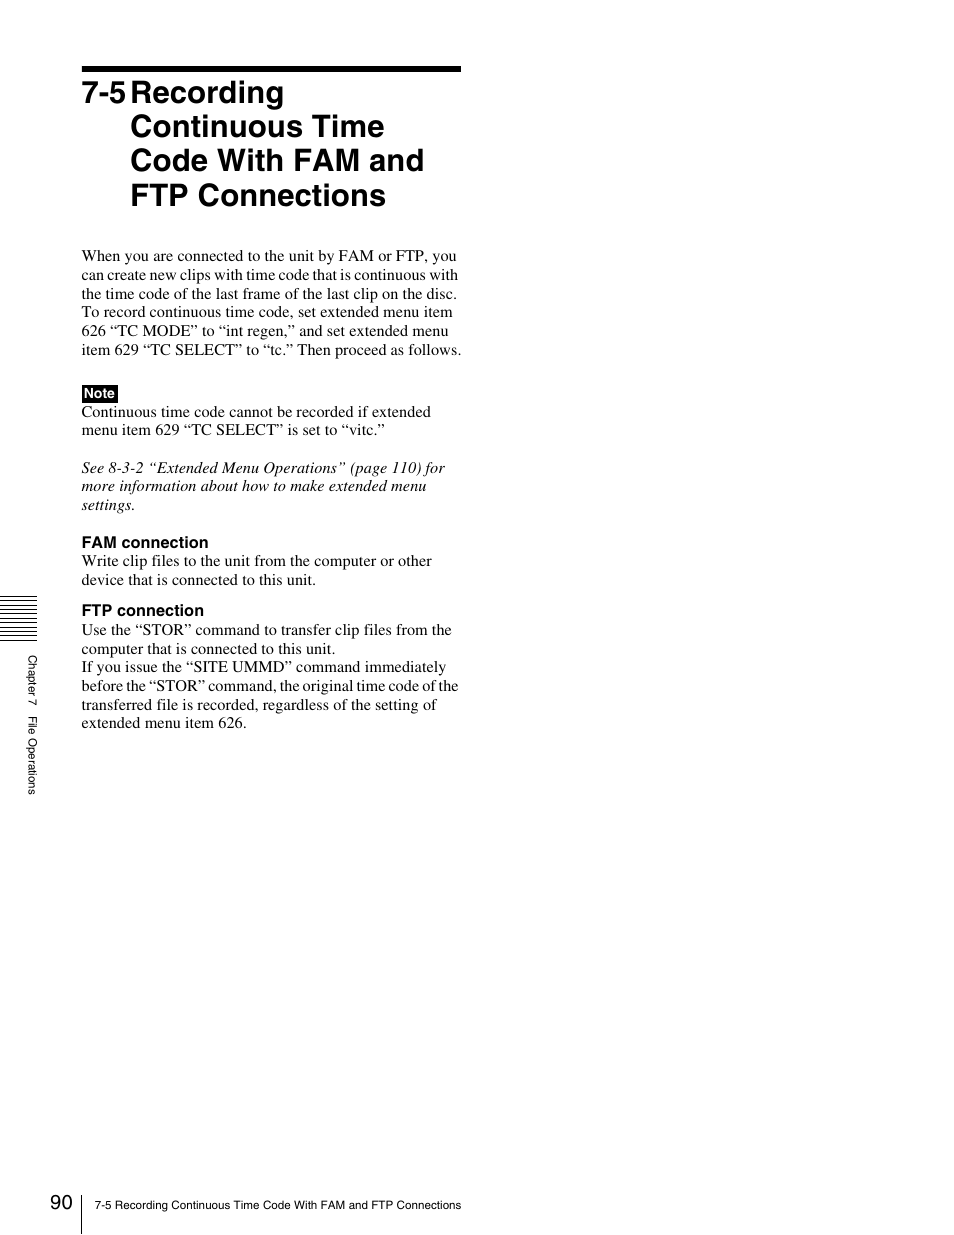 5 recording continuous time code with, Fam and ftp connections